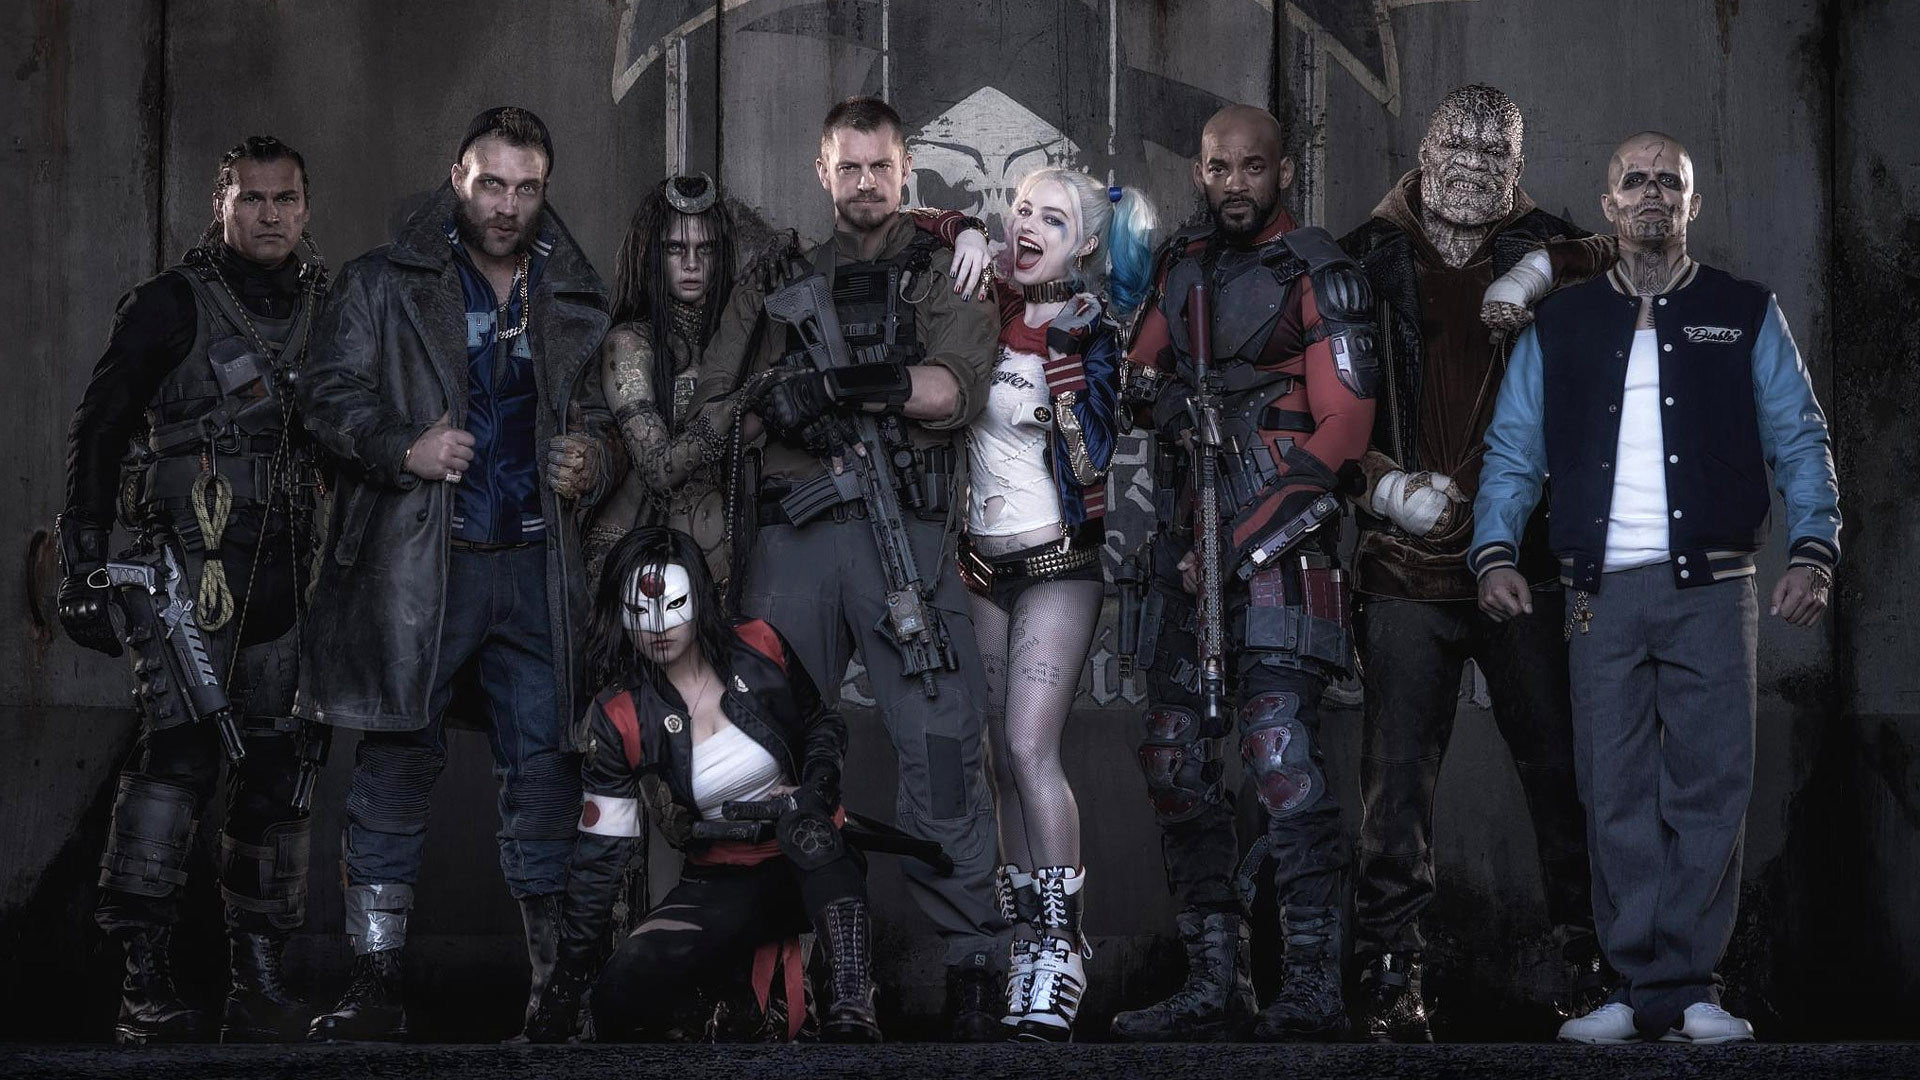 Suicide squad 2016 wallpaper full hd wallpapers for 1080p 1920x1080